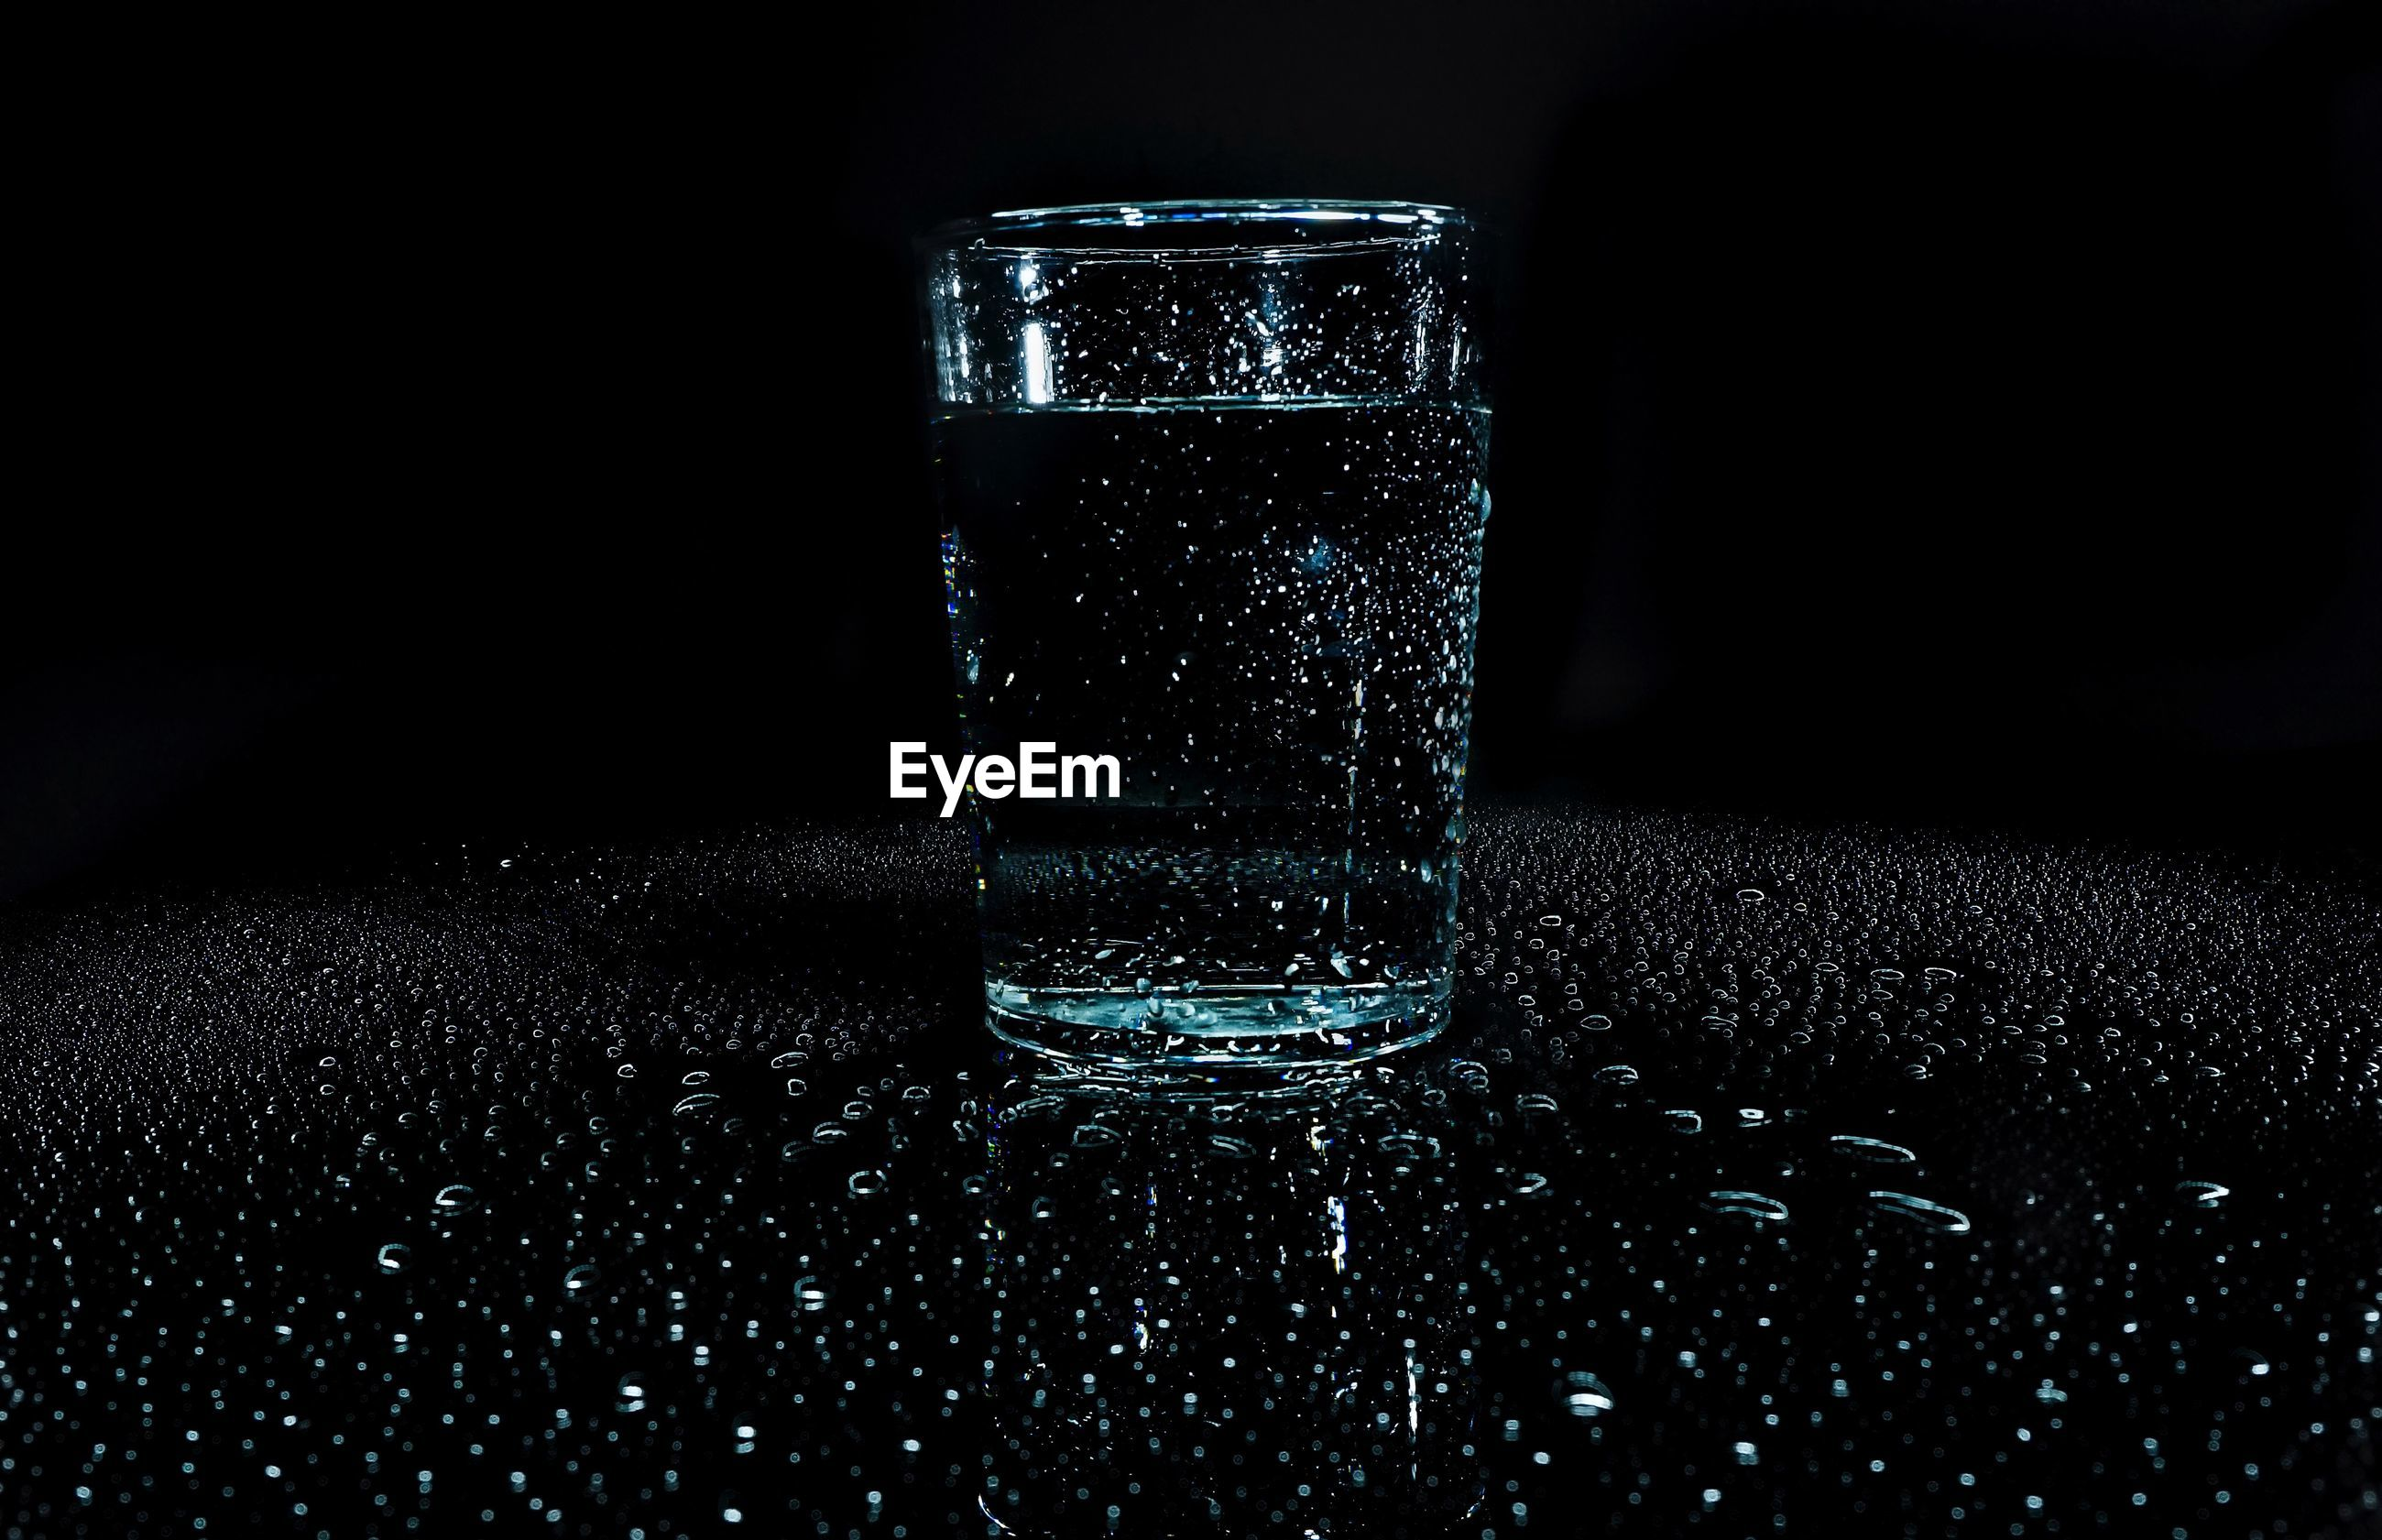 indoors, night, illuminated, dark, glass - material, close-up, transparent, lighting equipment, black background, glass, no people, window, copy space, darkroom, reflection, table, light, light - natural phenomenon, pattern, glowing